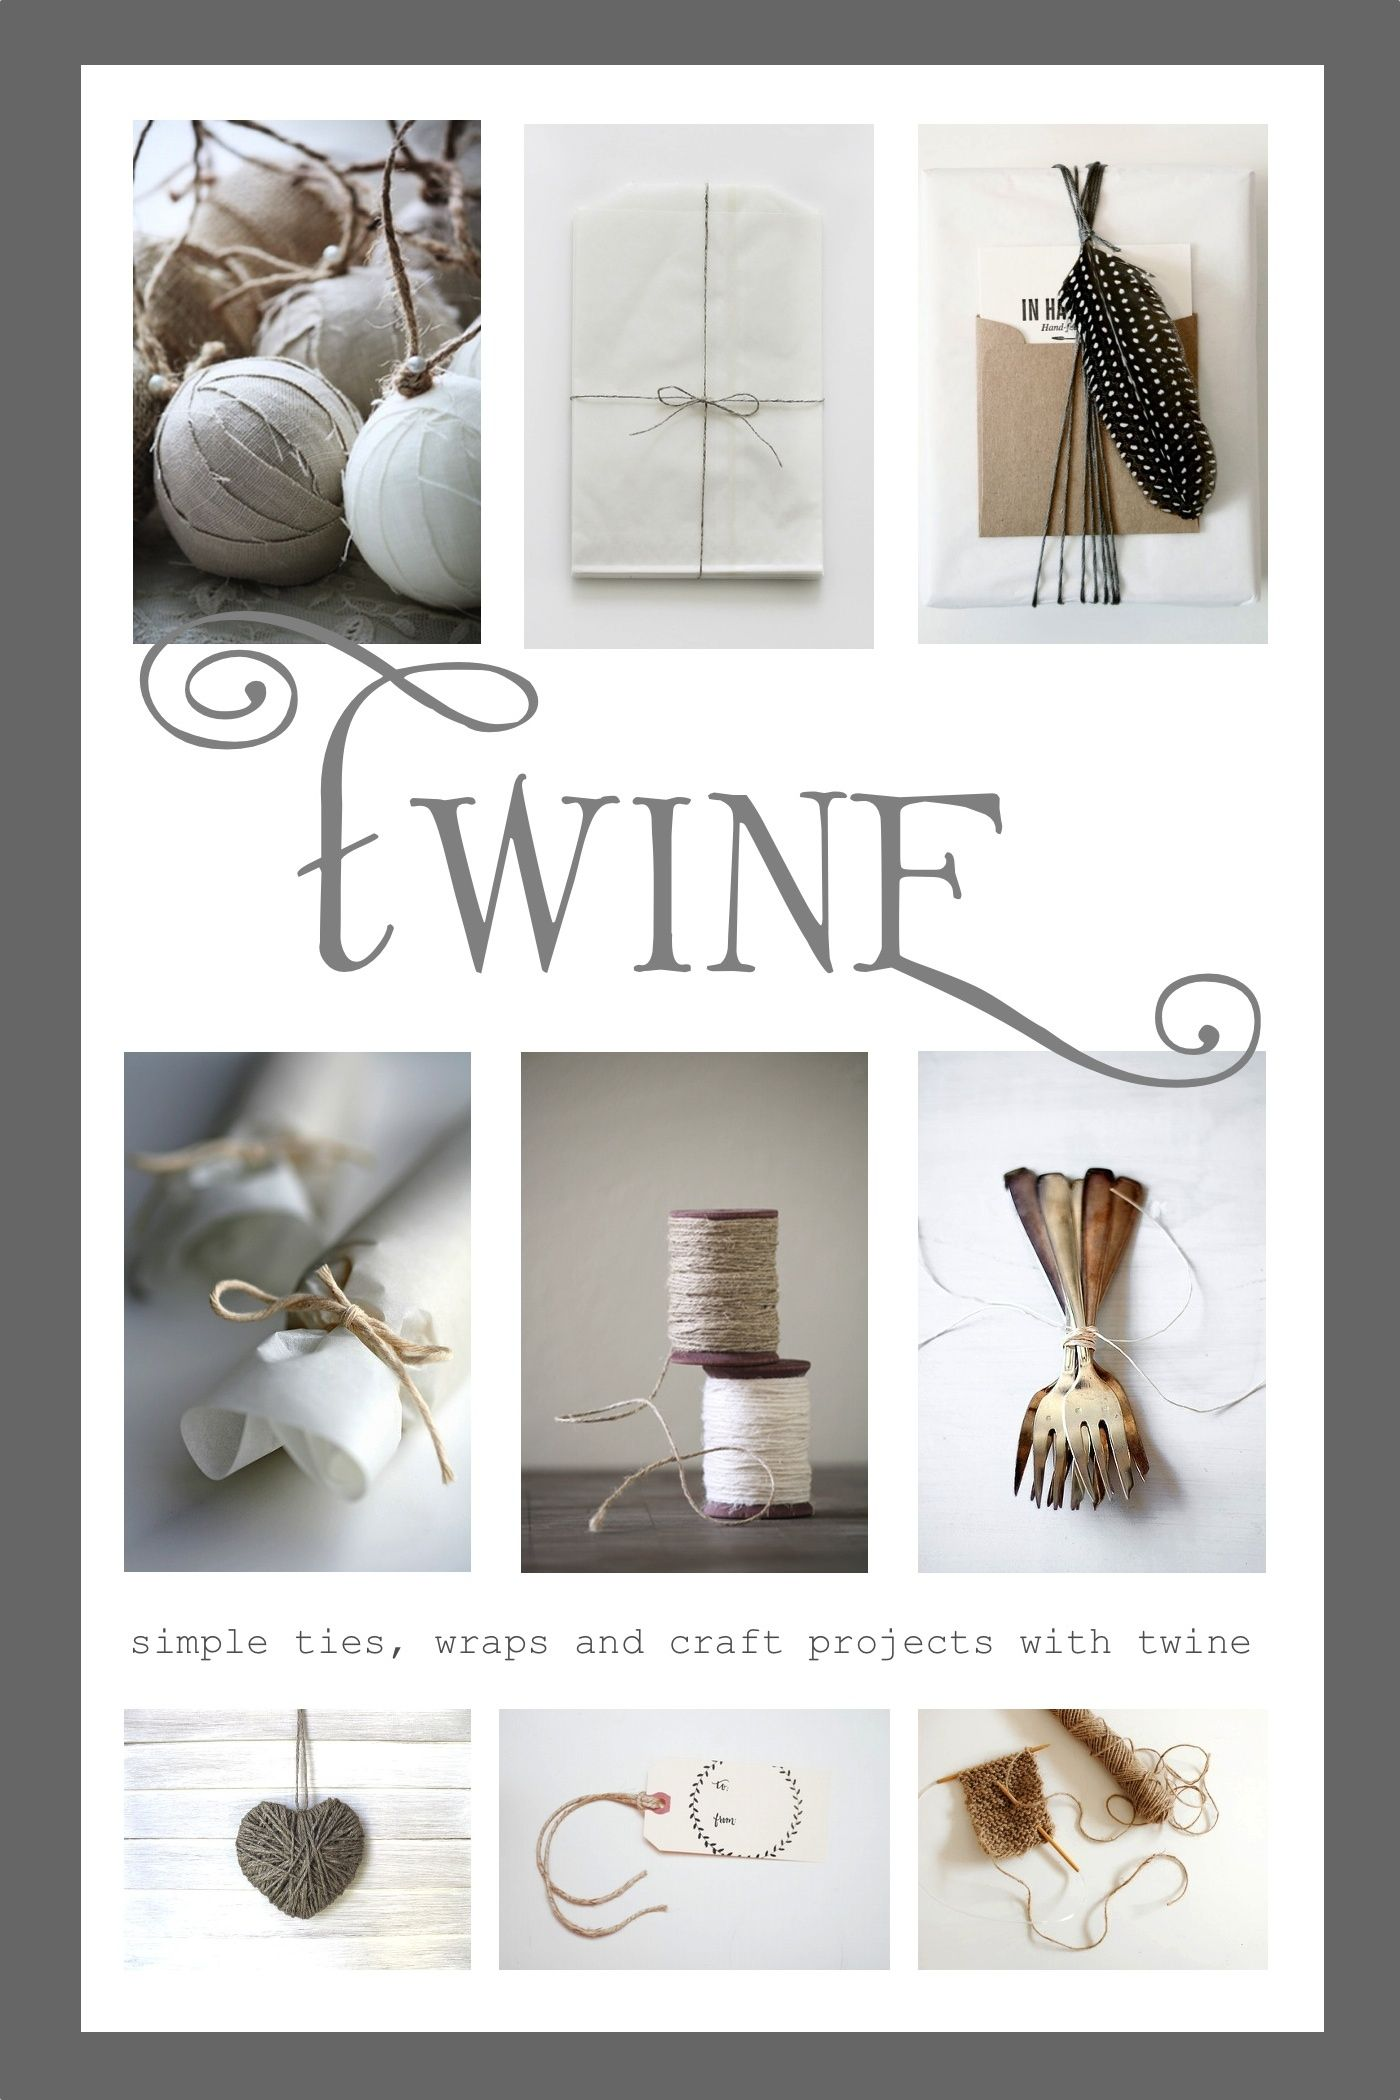 Twine Is A Simple String And Quite Versatile Here Are Some Ideas